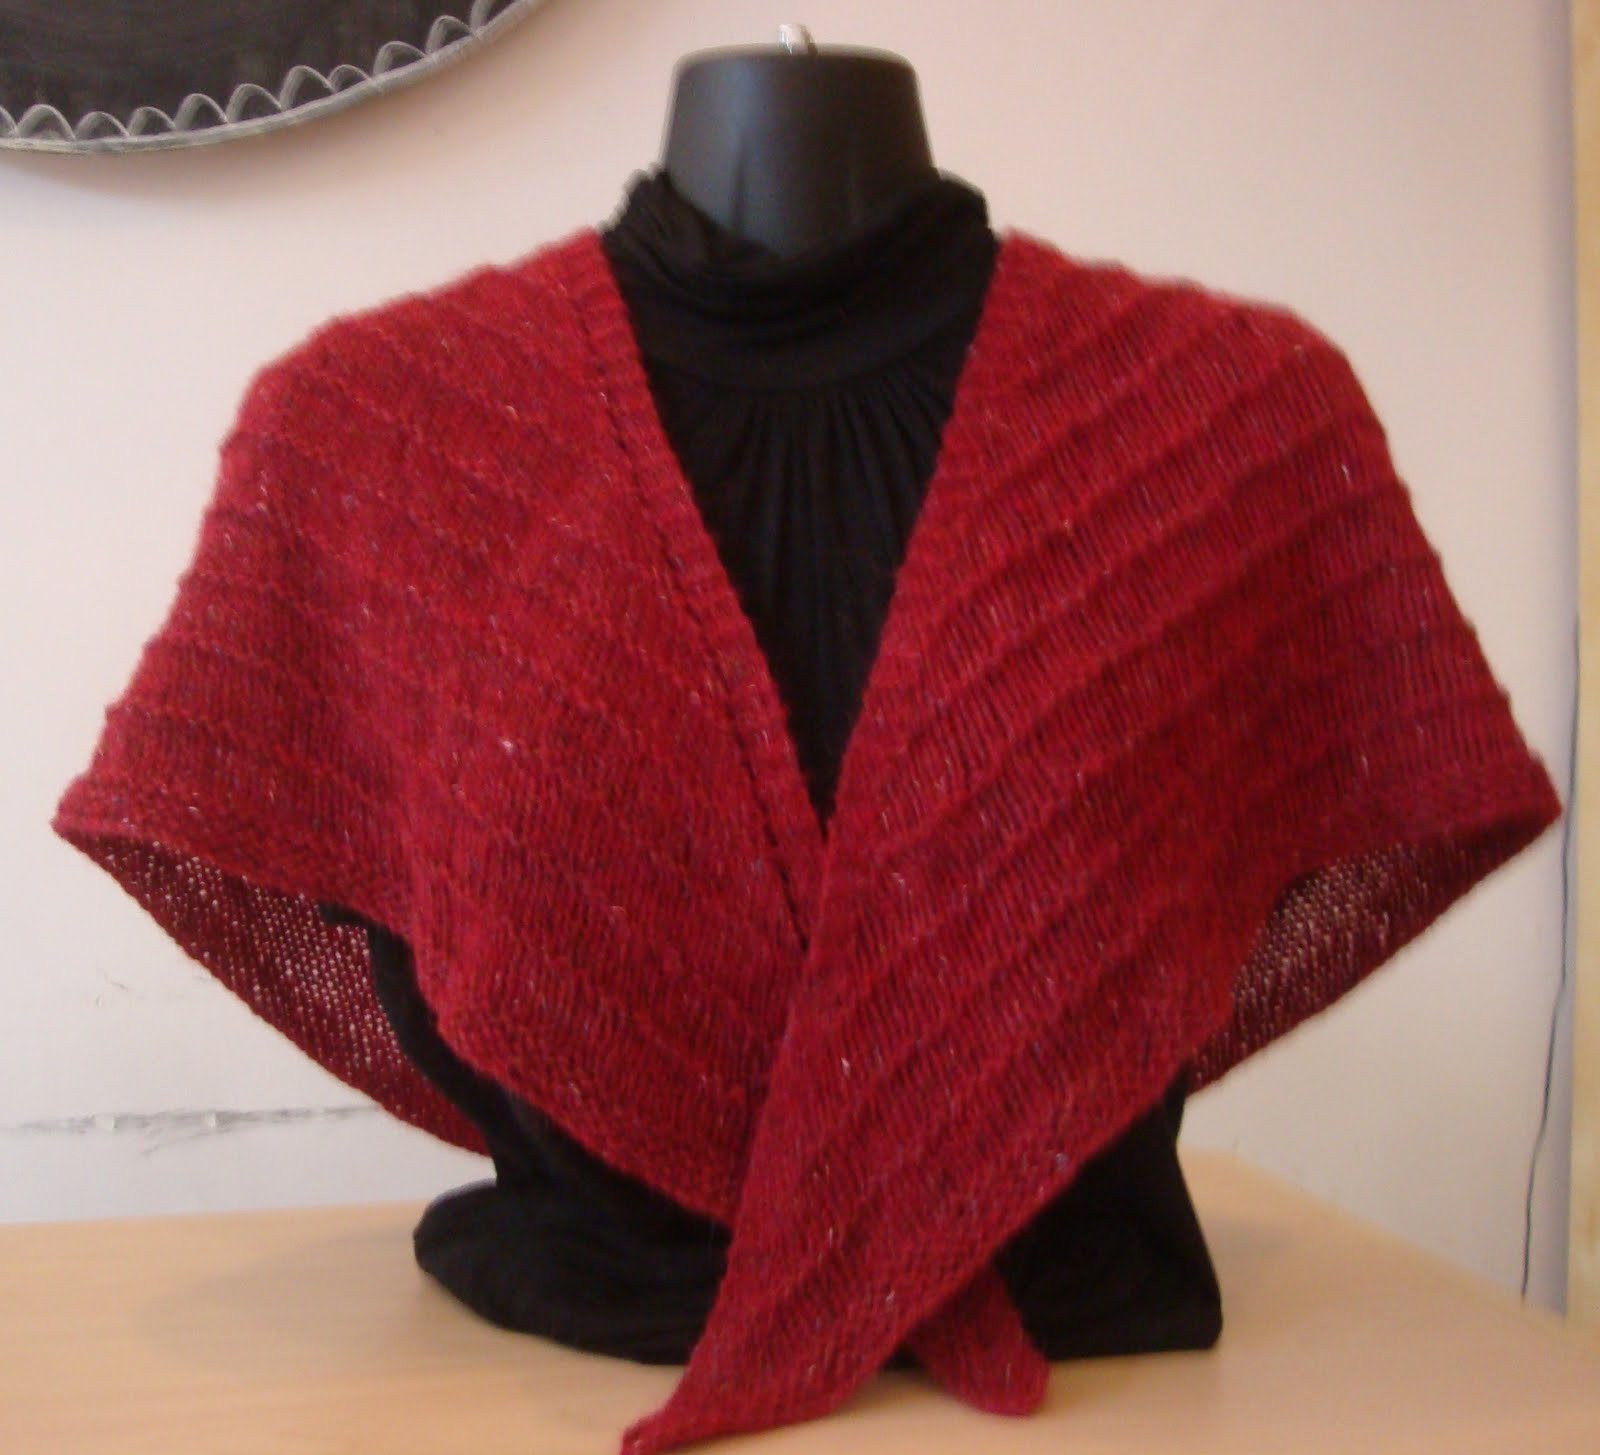 Lovely Triangle Shawl Free Pattern Design Patterns Triangle Shawl Of Lovely 41 Pics Triangle Shawl